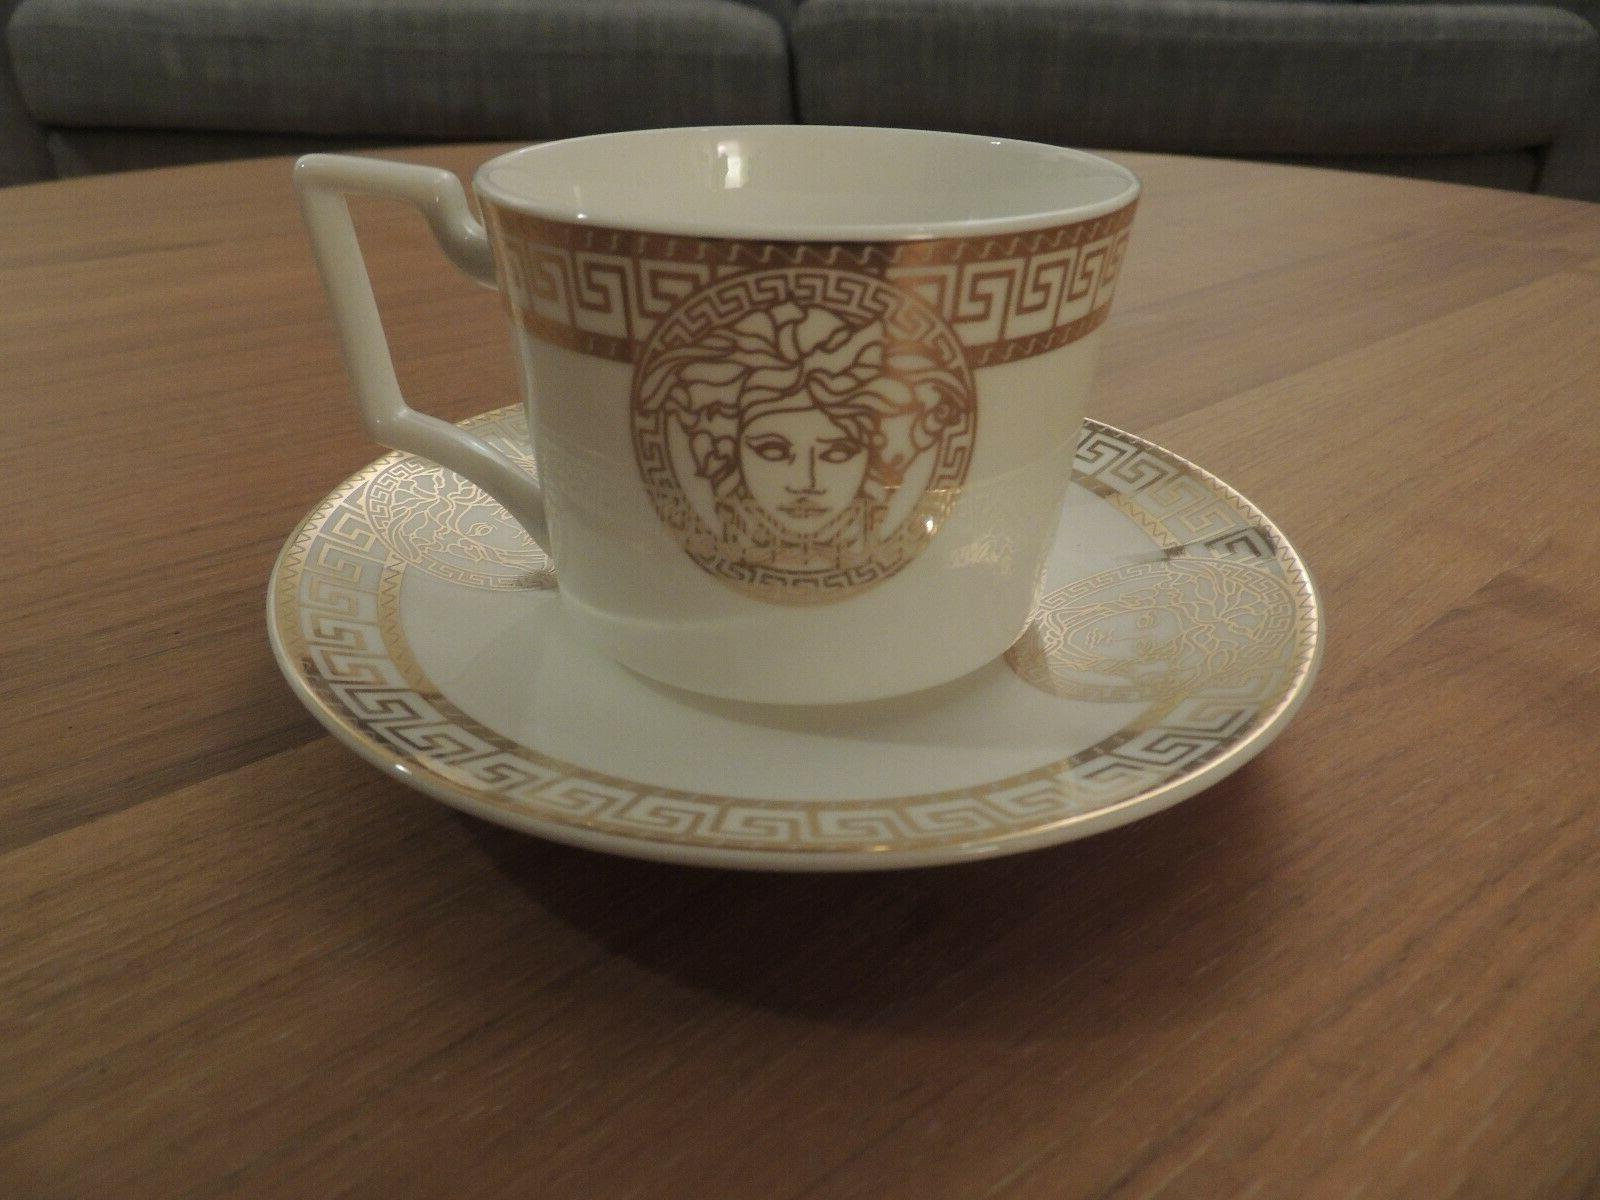 NEW VERSACE Inspired Rosenthal Tea Cups Coffe Cup and Saucer